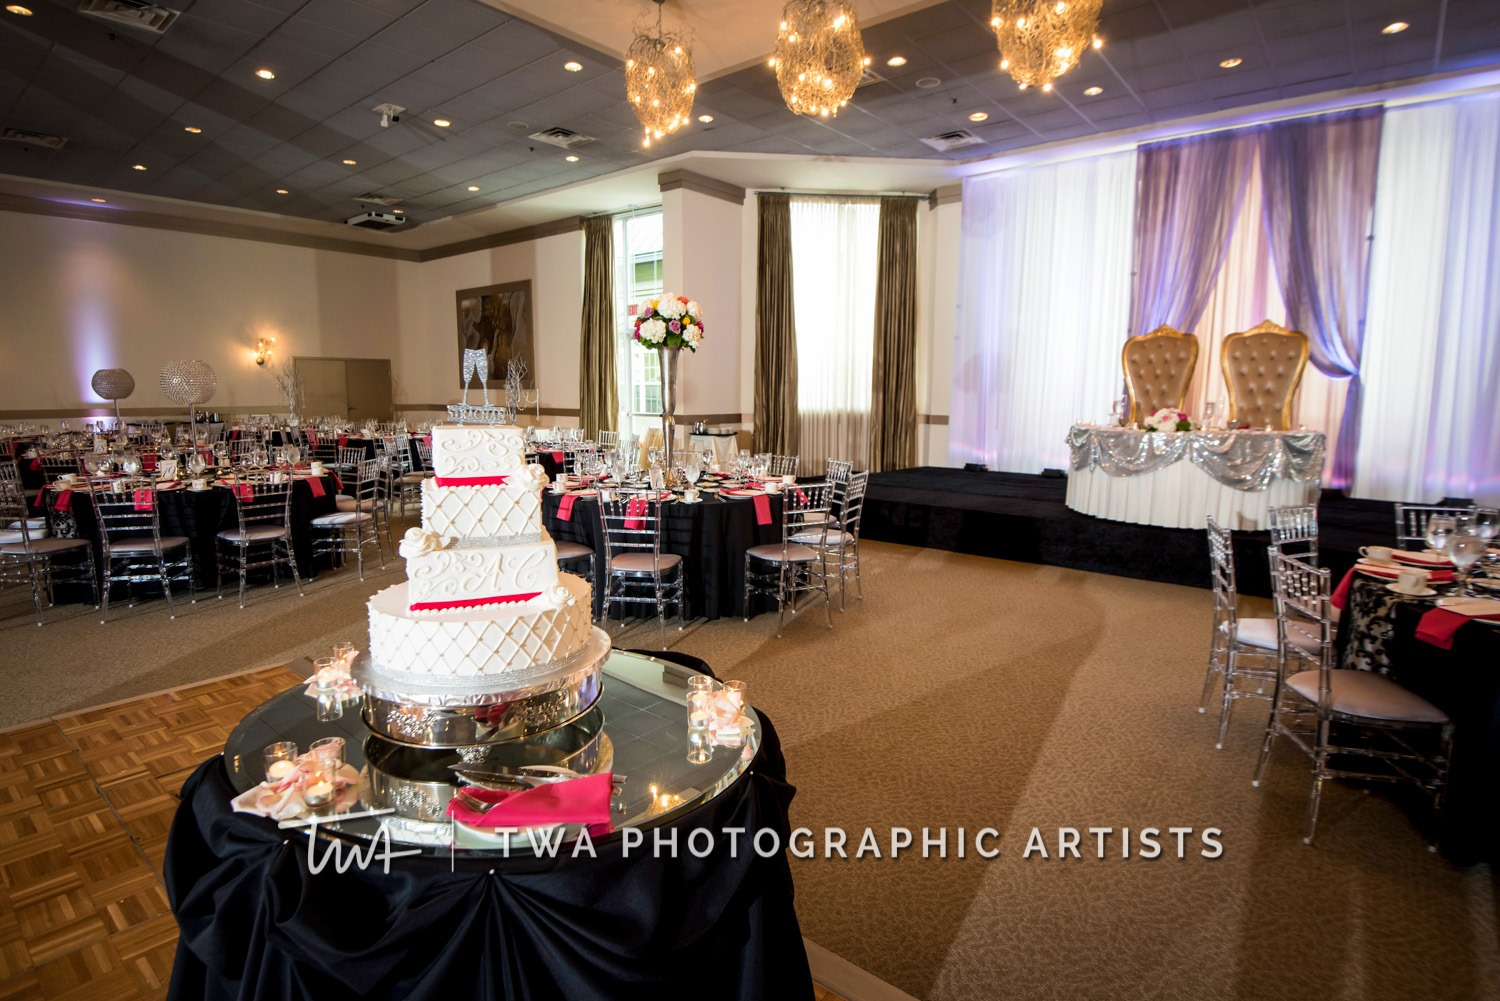 Chicago-Wedding-Photographer-TWA-Photographic-Artists-Belvedere-Banquets_Kayat_Strachan_LF-0717